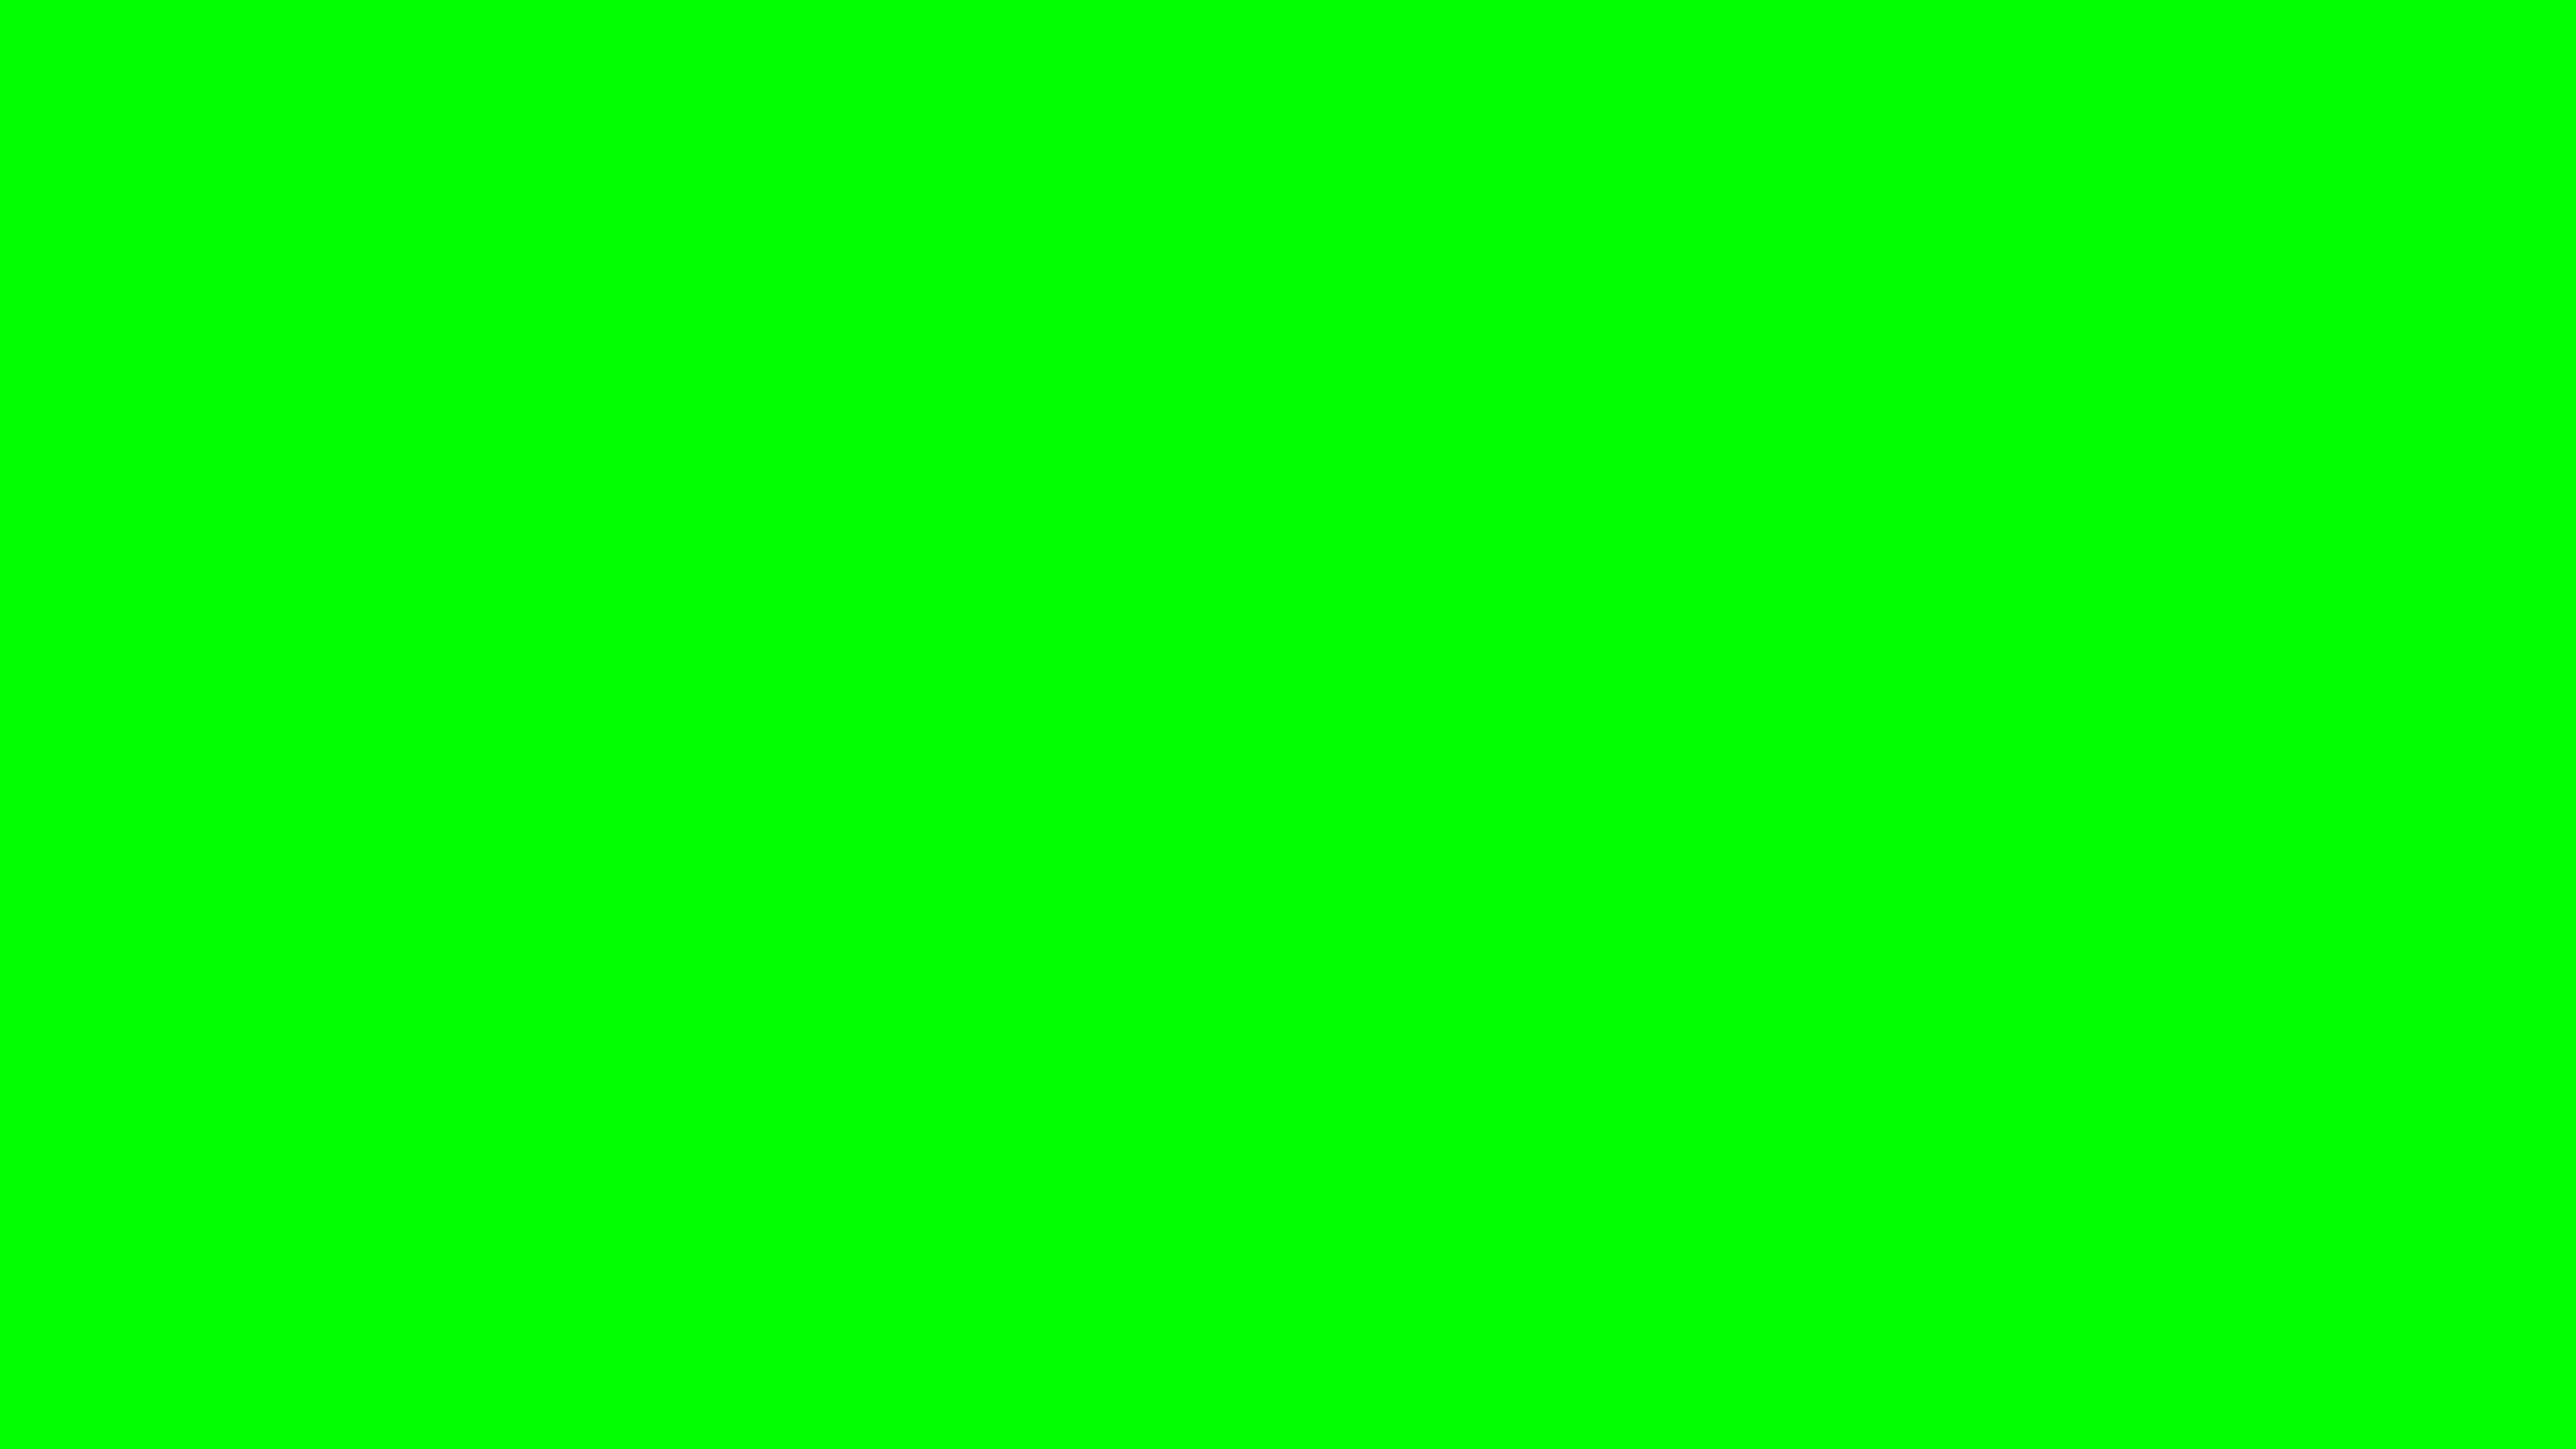 7680x4320 Green X11 Gui Green Solid Color Background